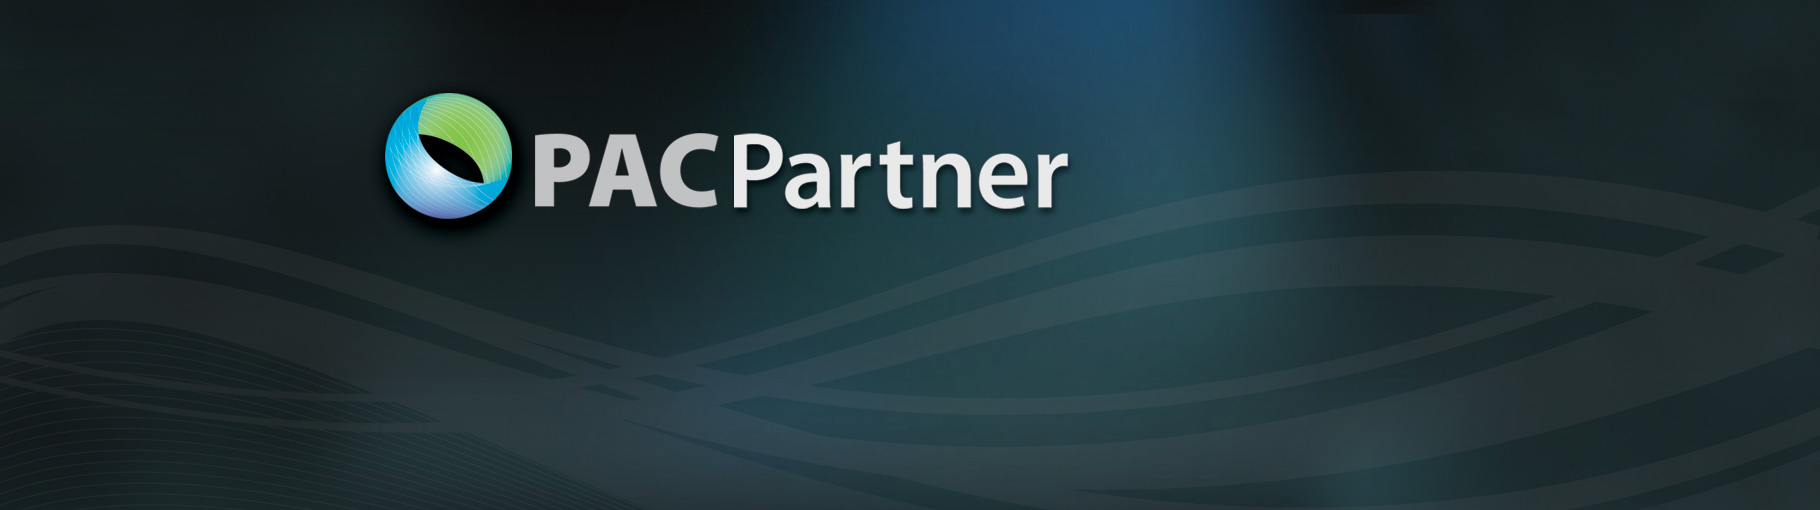 pacpartner-slider-for-ezc